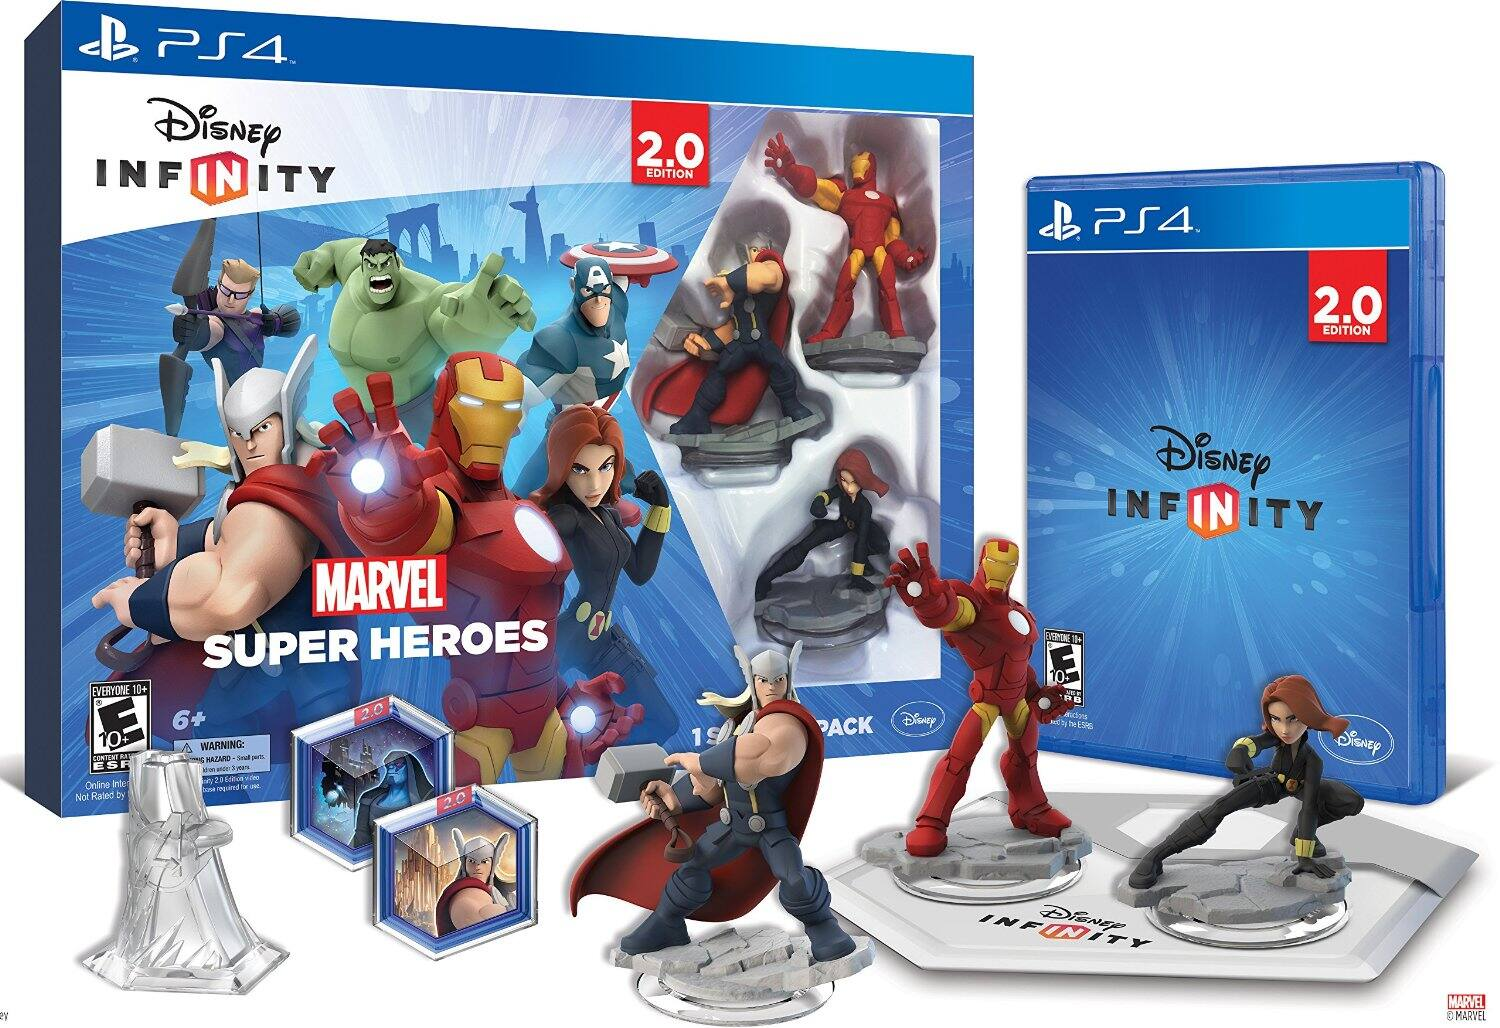 Disney Infinity 2.0 Various Consoles $54.99 w/PRIME FS +25% off if using Chase Amazon.com CC = $41.24 + tax